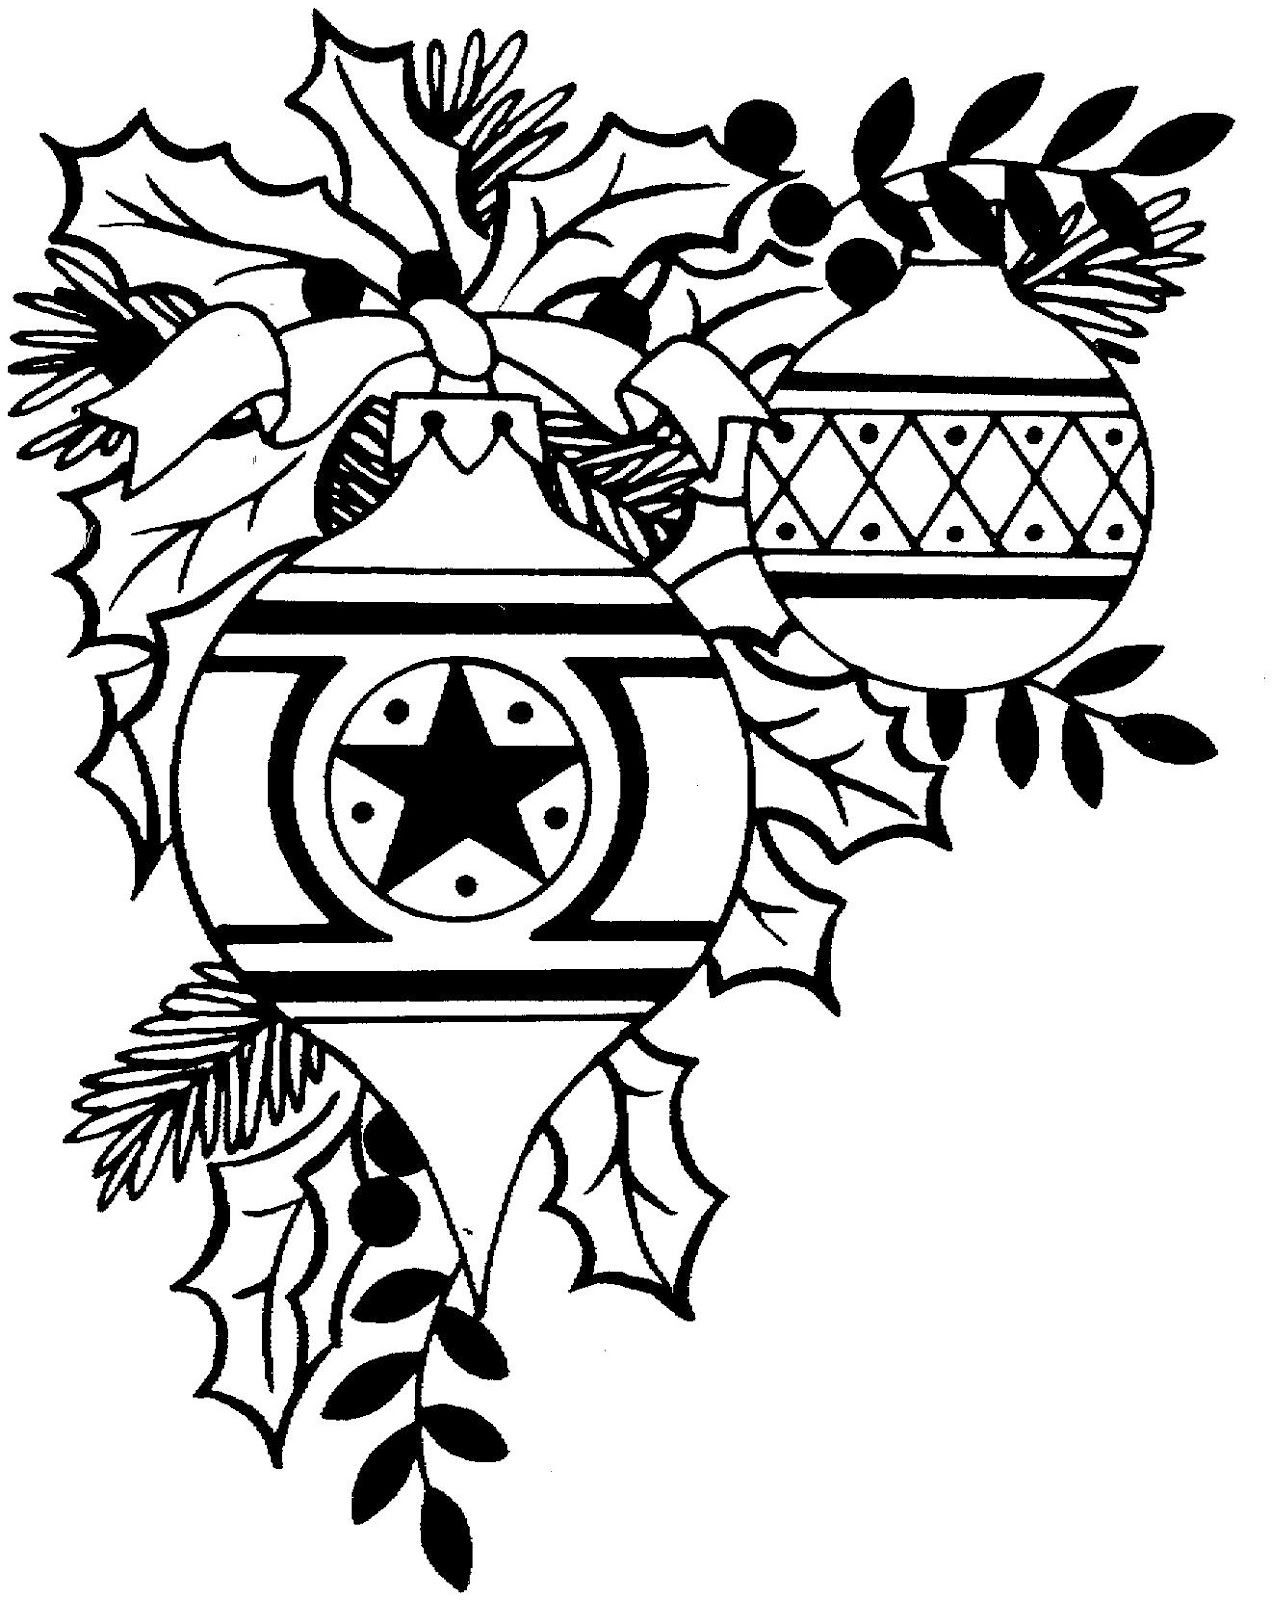 Fonts Icons Clipart Black And White Christmas Designs 101 200